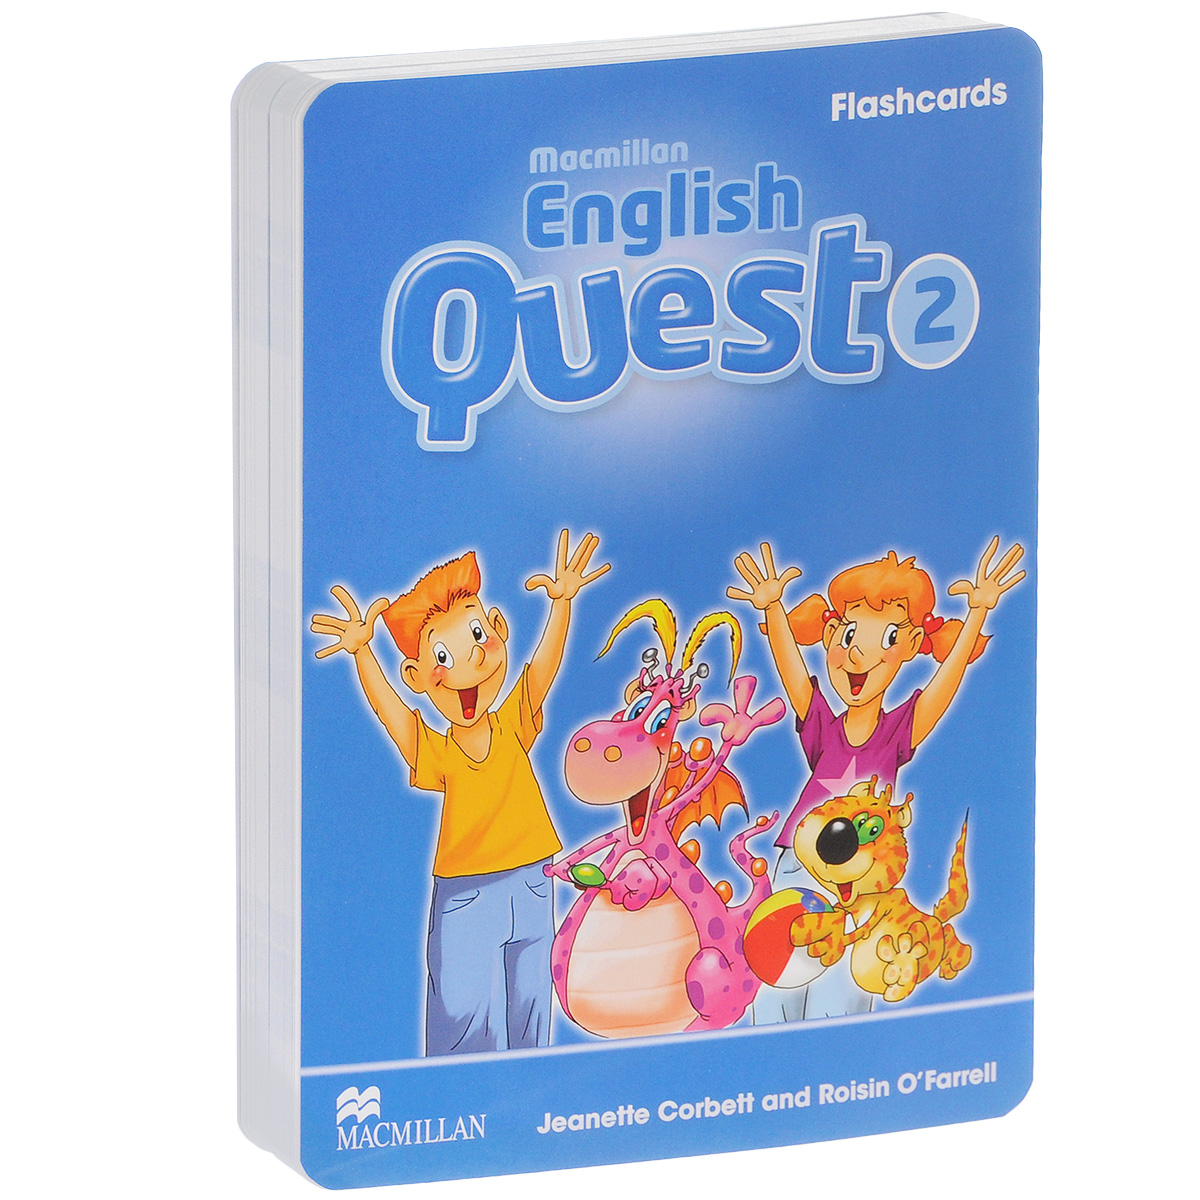 Macmillan English Quest 2: Flashcards